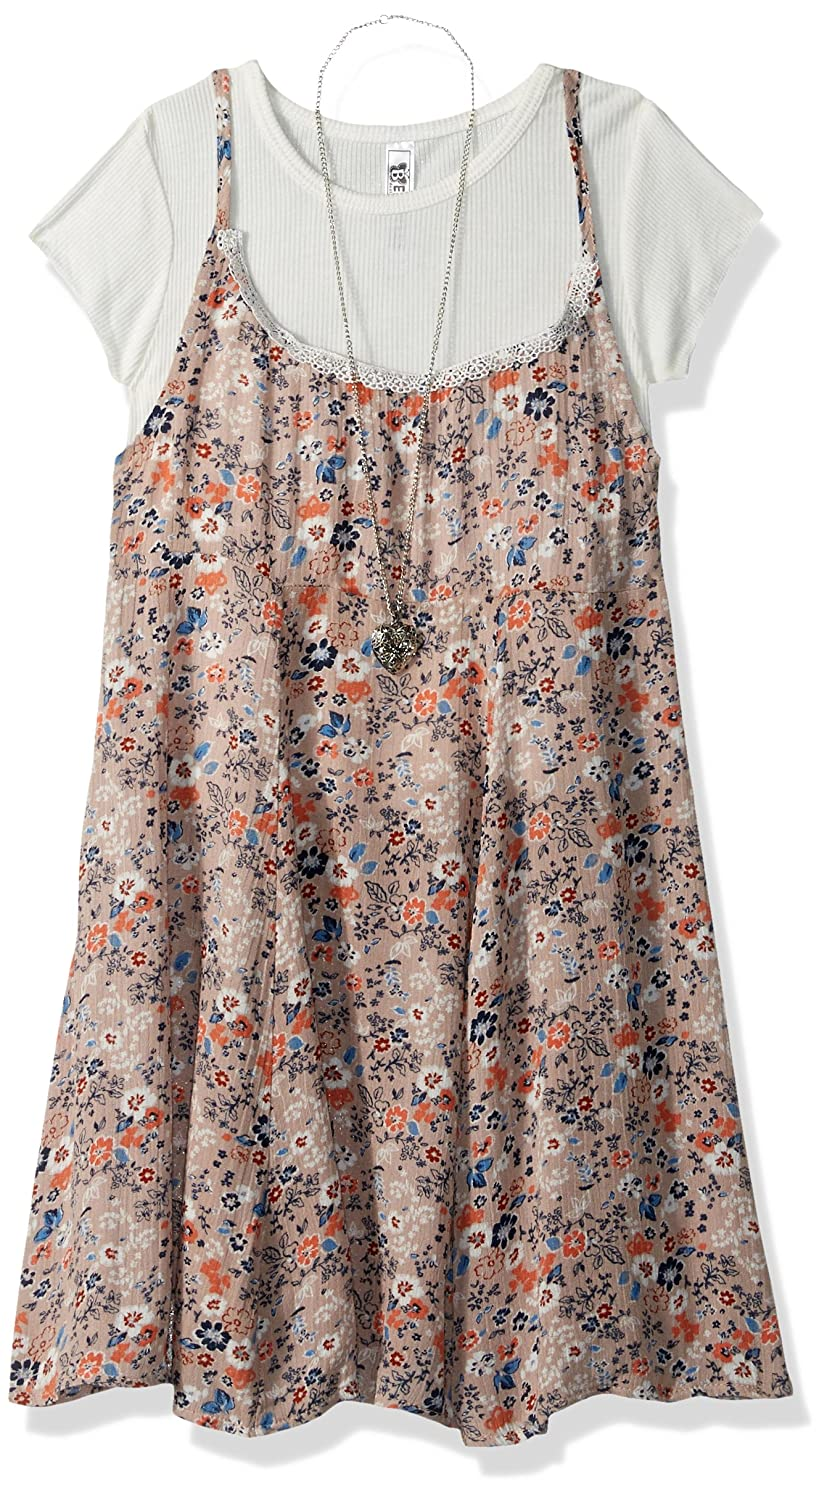 4dcab0ca0 Top2: Beautees Big Girls' 2 Piece Sleeveless Print Swing Dress with Crop Top